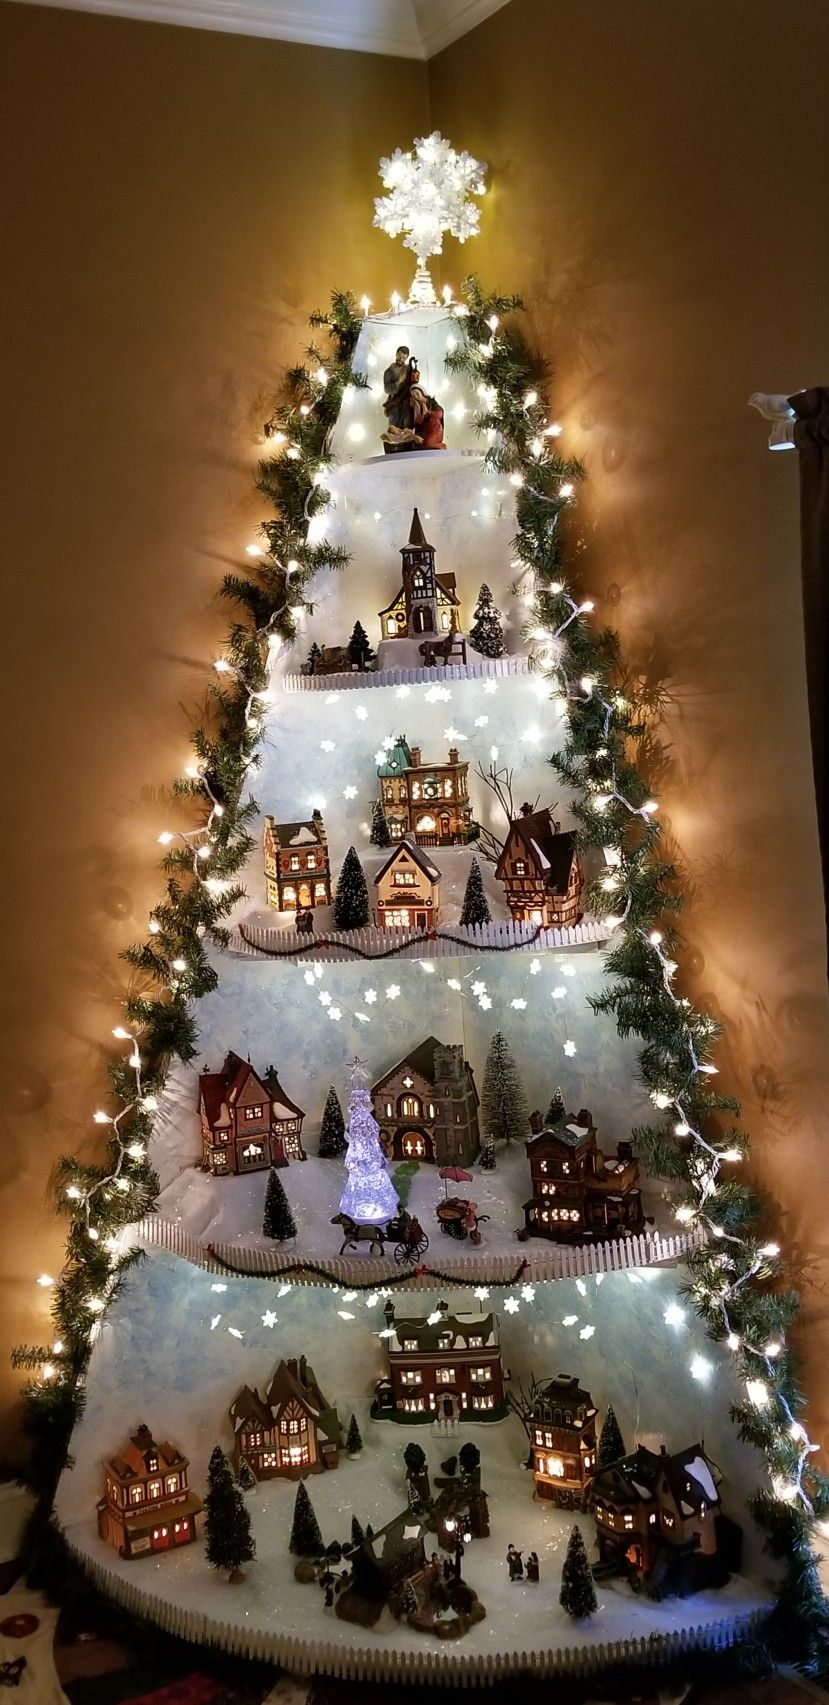 Christmas Village Display Tree Holidays Christmas Village